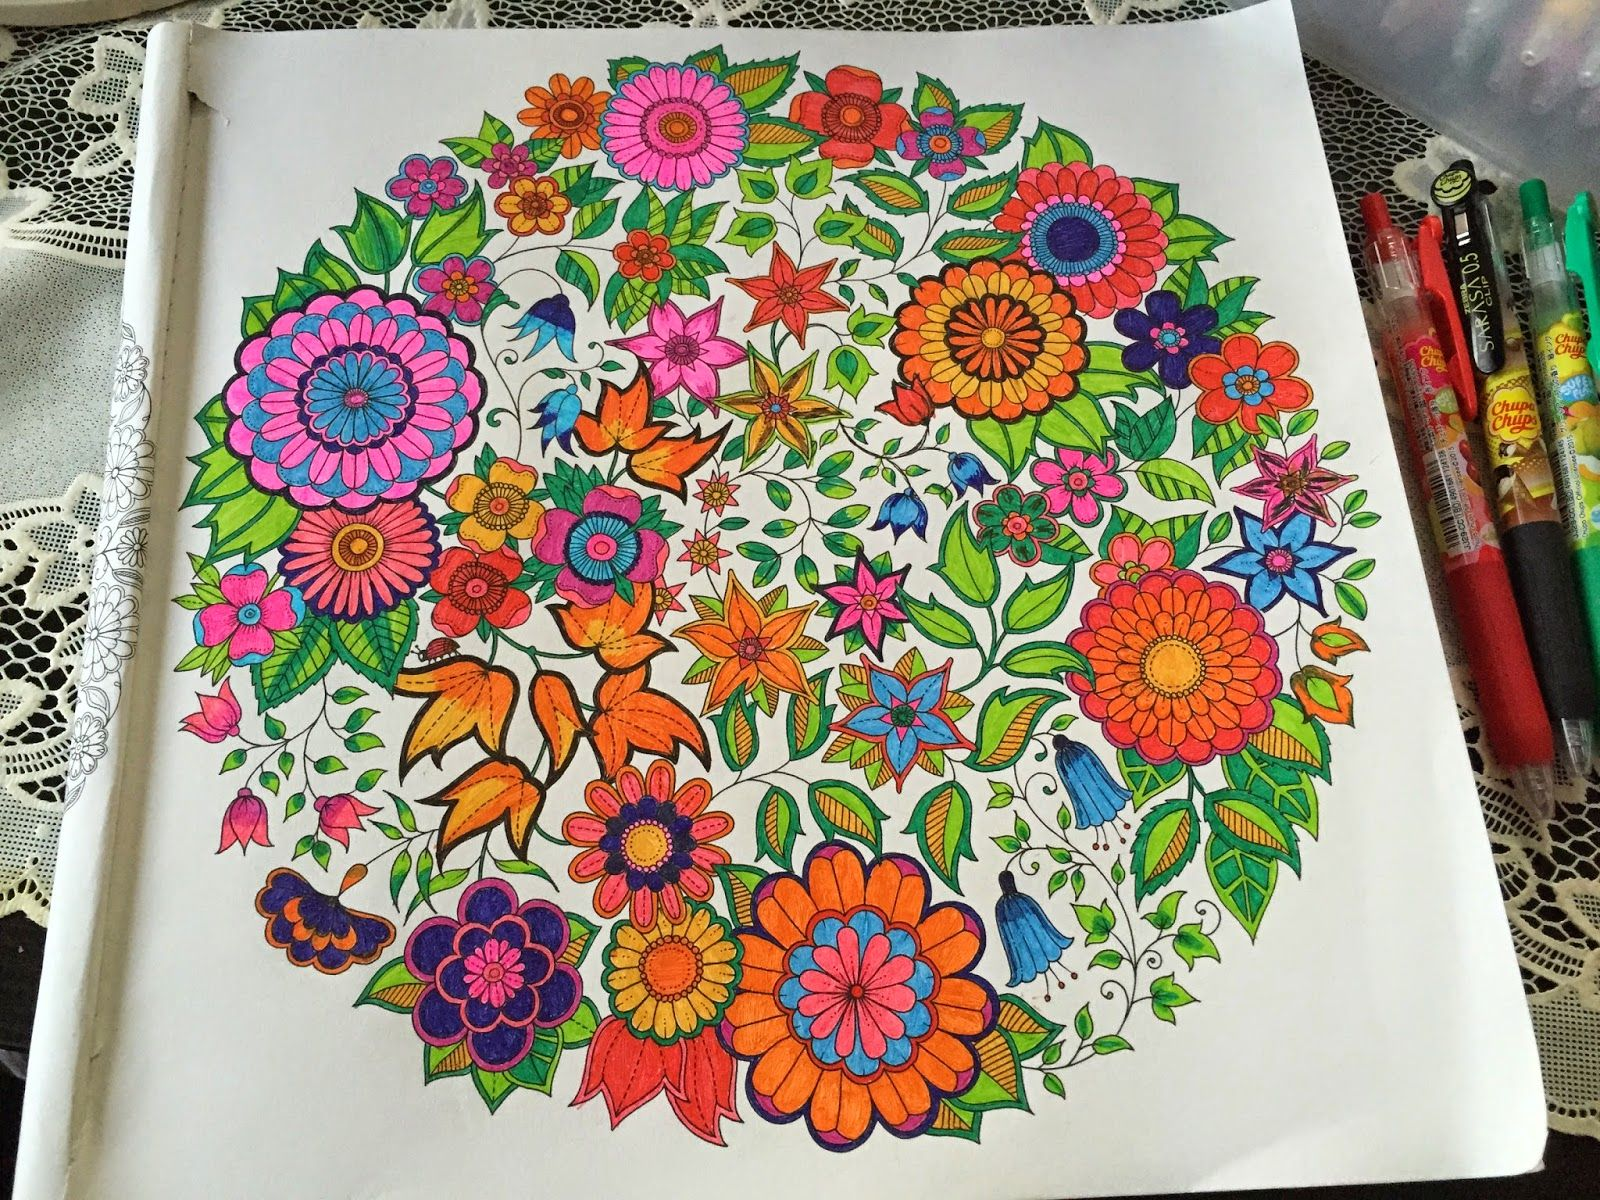 Zendoodle coloring enchanting gardens - Take A Peek At This Great Artwork On Johanna Basford S Colouring Gallery